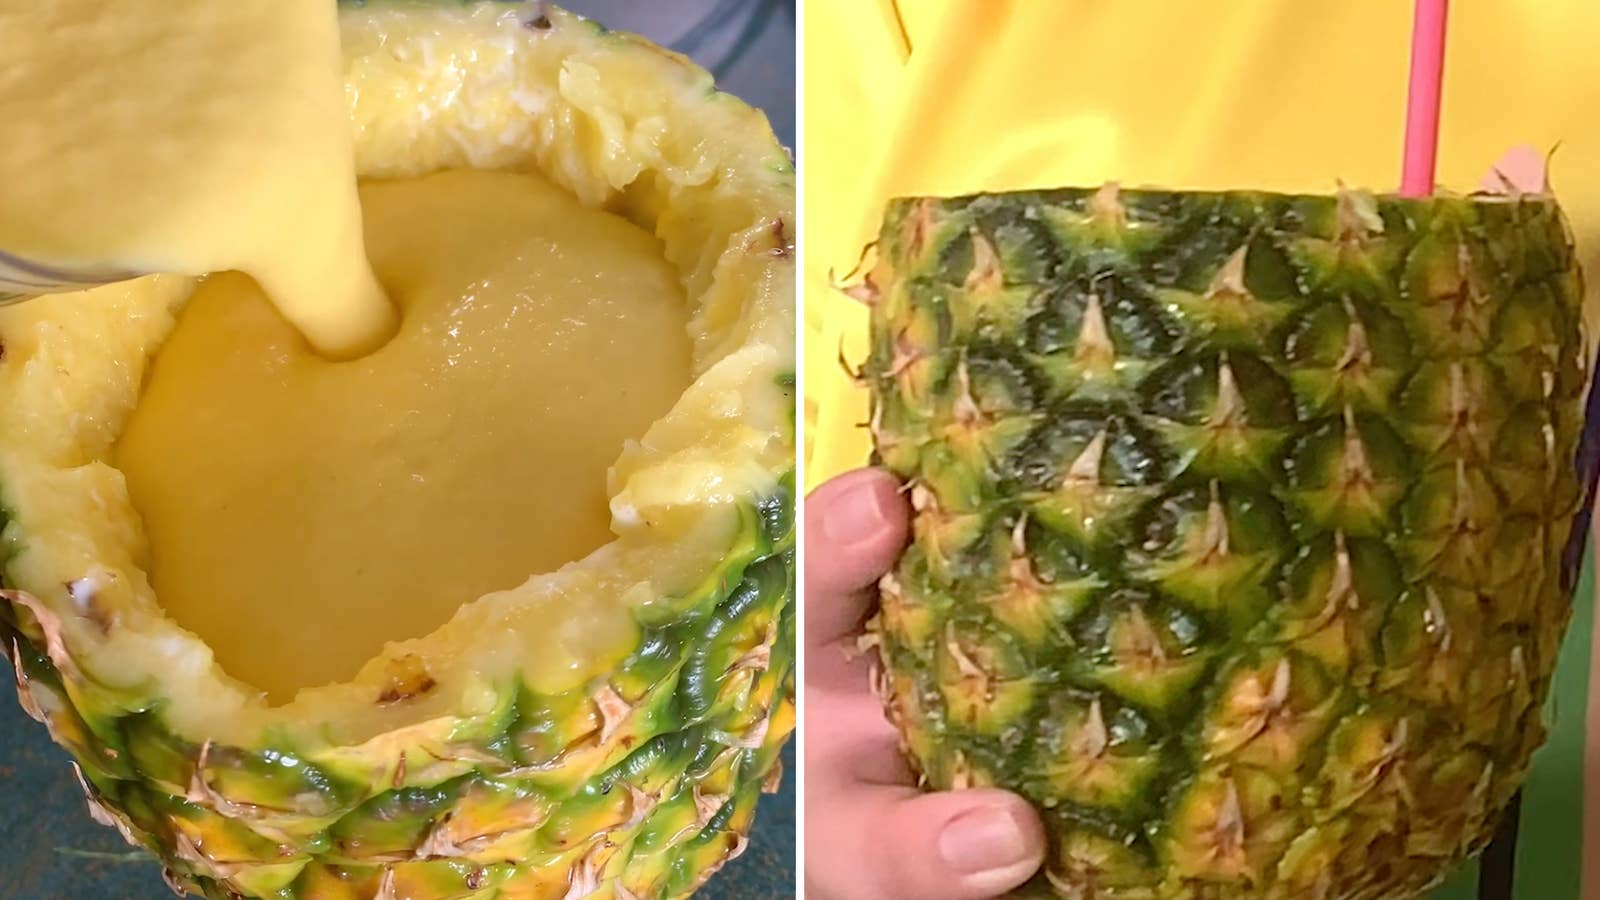 Spiked Pineapple Mango Smoothie